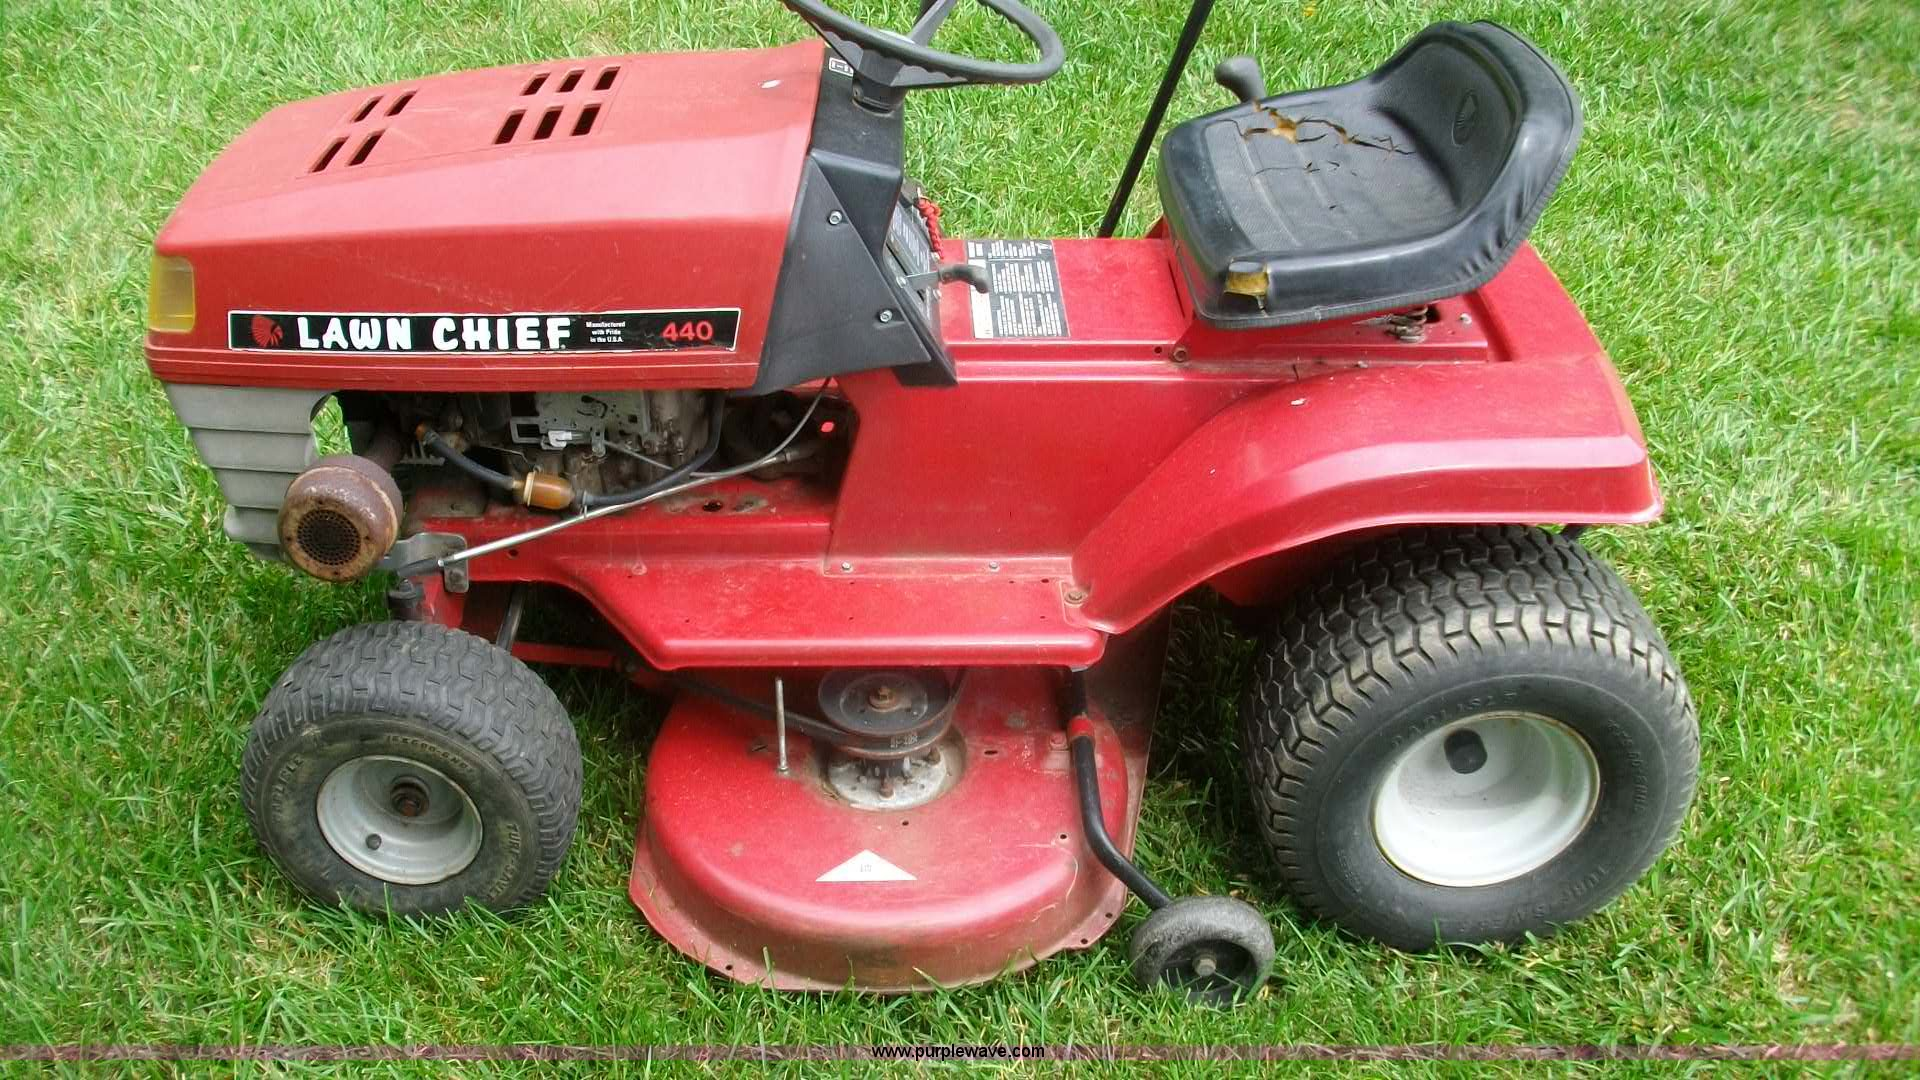 ... Lawn Chief 440 riding mower Full size in new window ...